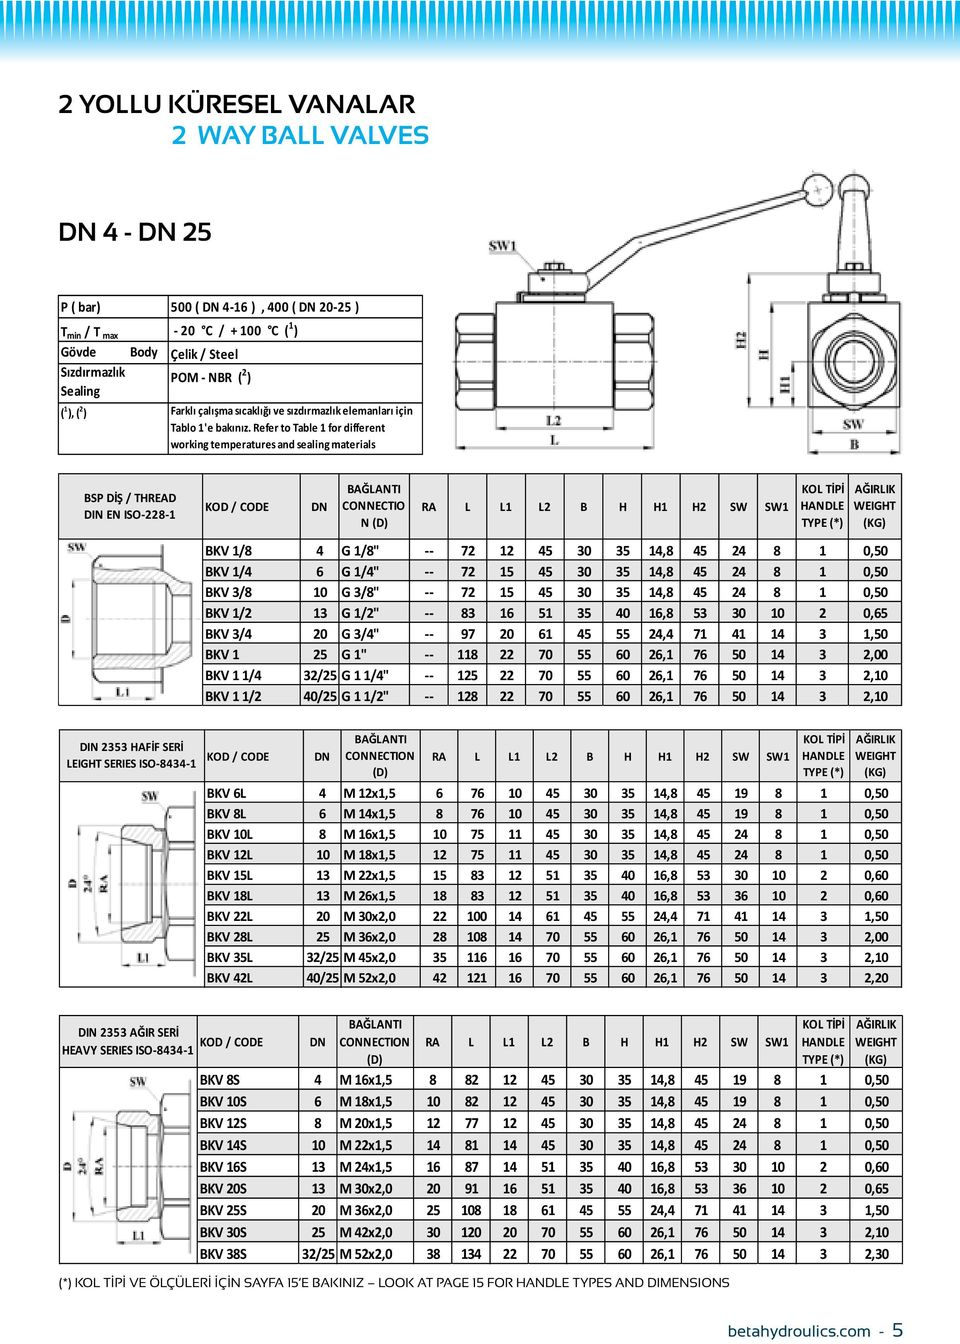 "Refer to Table 1 for different working temperatures and sealing materials BSP DİŞ / THREAD DIN EN ISO-228-1 DN CONNECTIO N (D) RA L L1 L2 B H H1 H2 SW SW1 BKV 1/8 4 G 1/8"" -- 72 12 45 30 35 14,8 45"